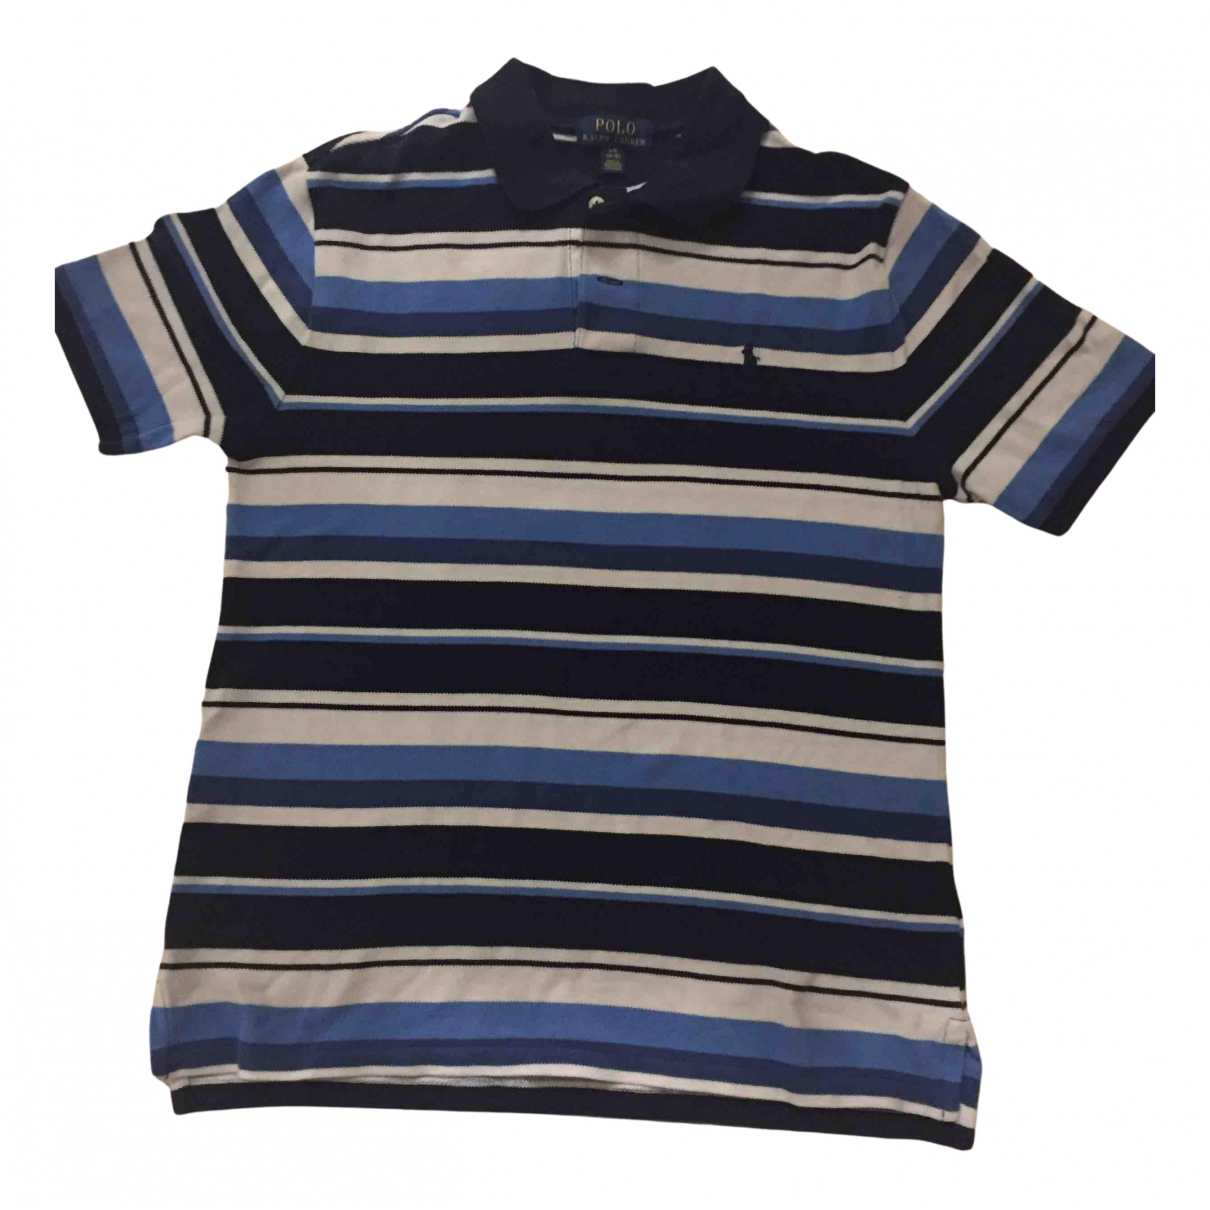 Polo Ralph Lauren N Blue Cotton  top for Kids 16 years - M FR